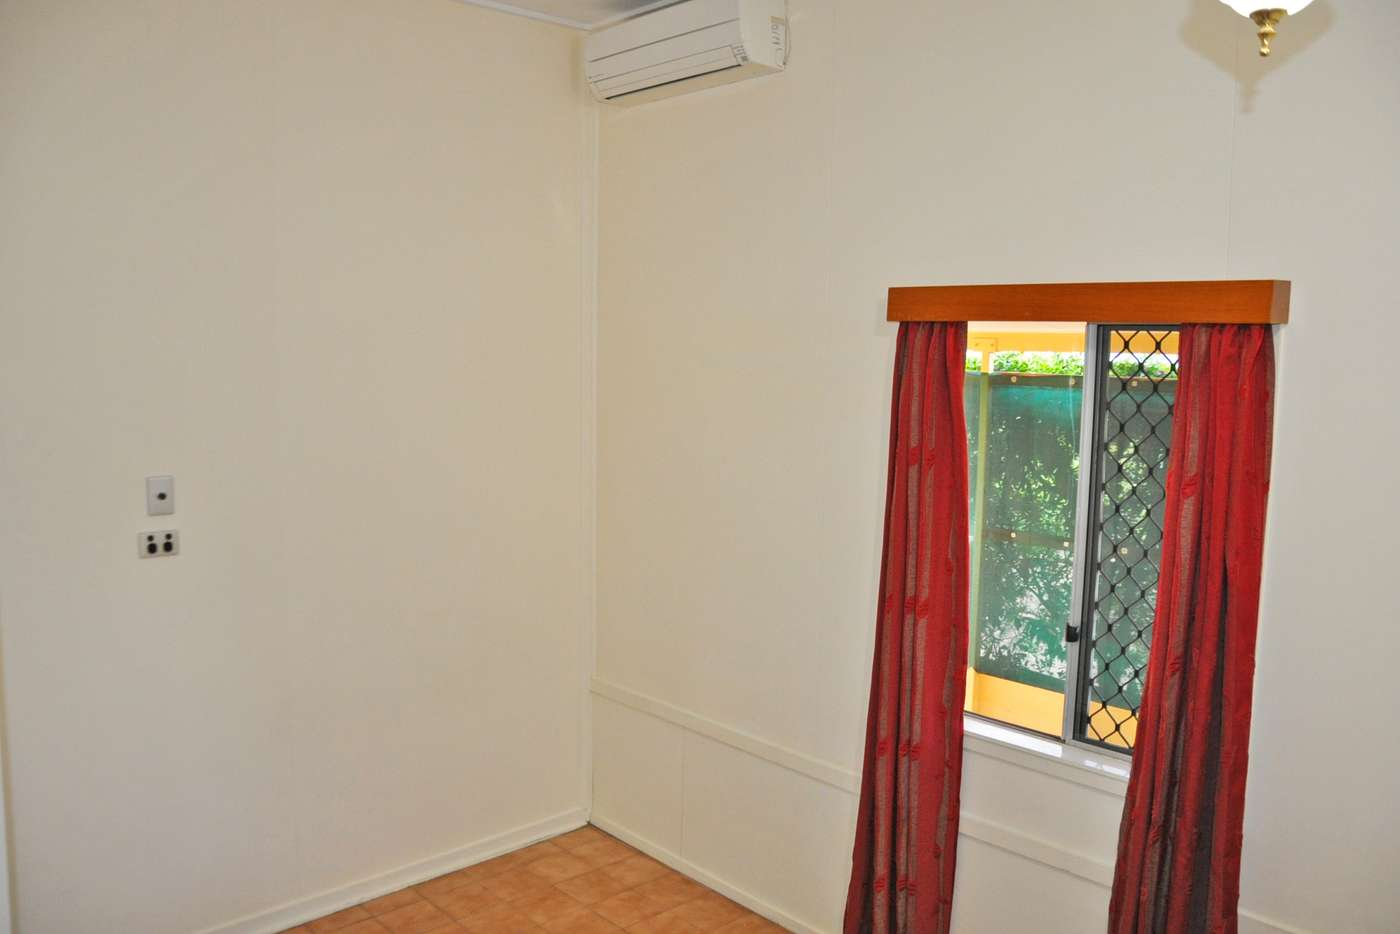 Seventh view of Homely house listing, 14 Downs Street, Mareeba QLD 4880